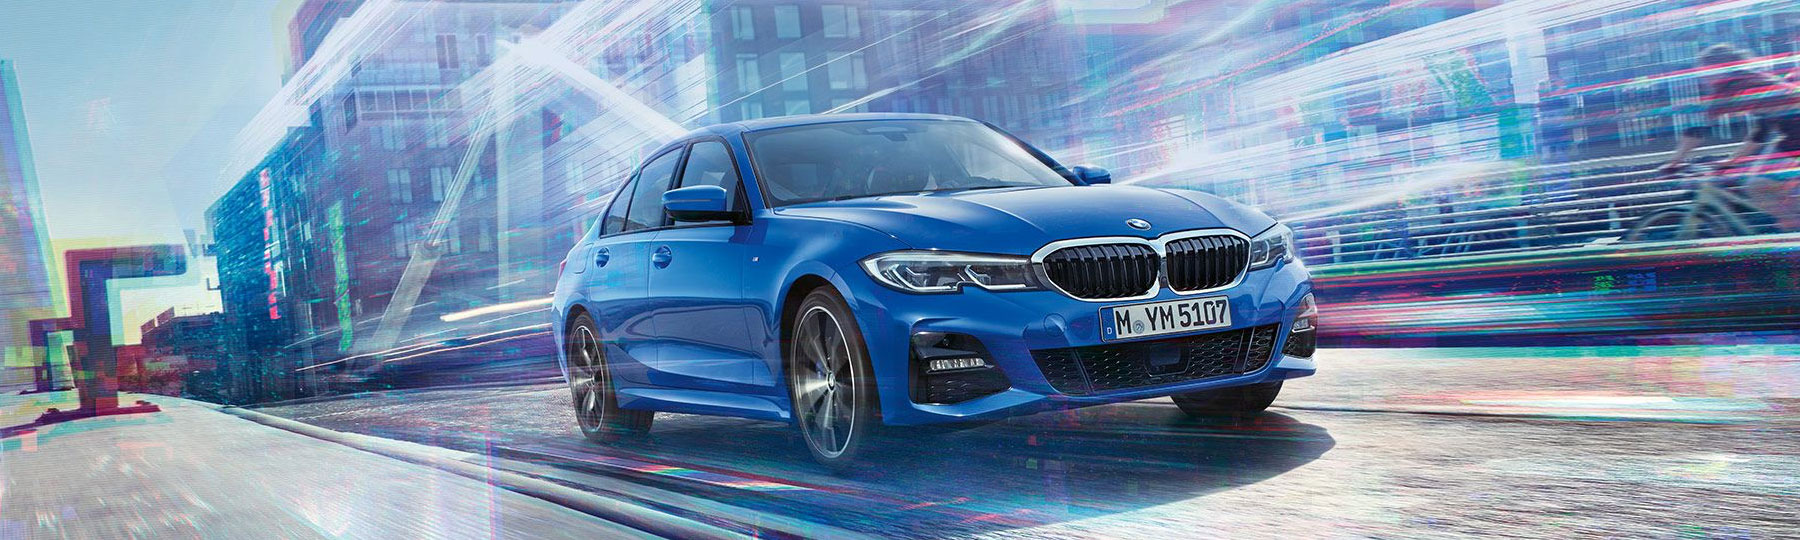 BMW 3 Series Business Offers